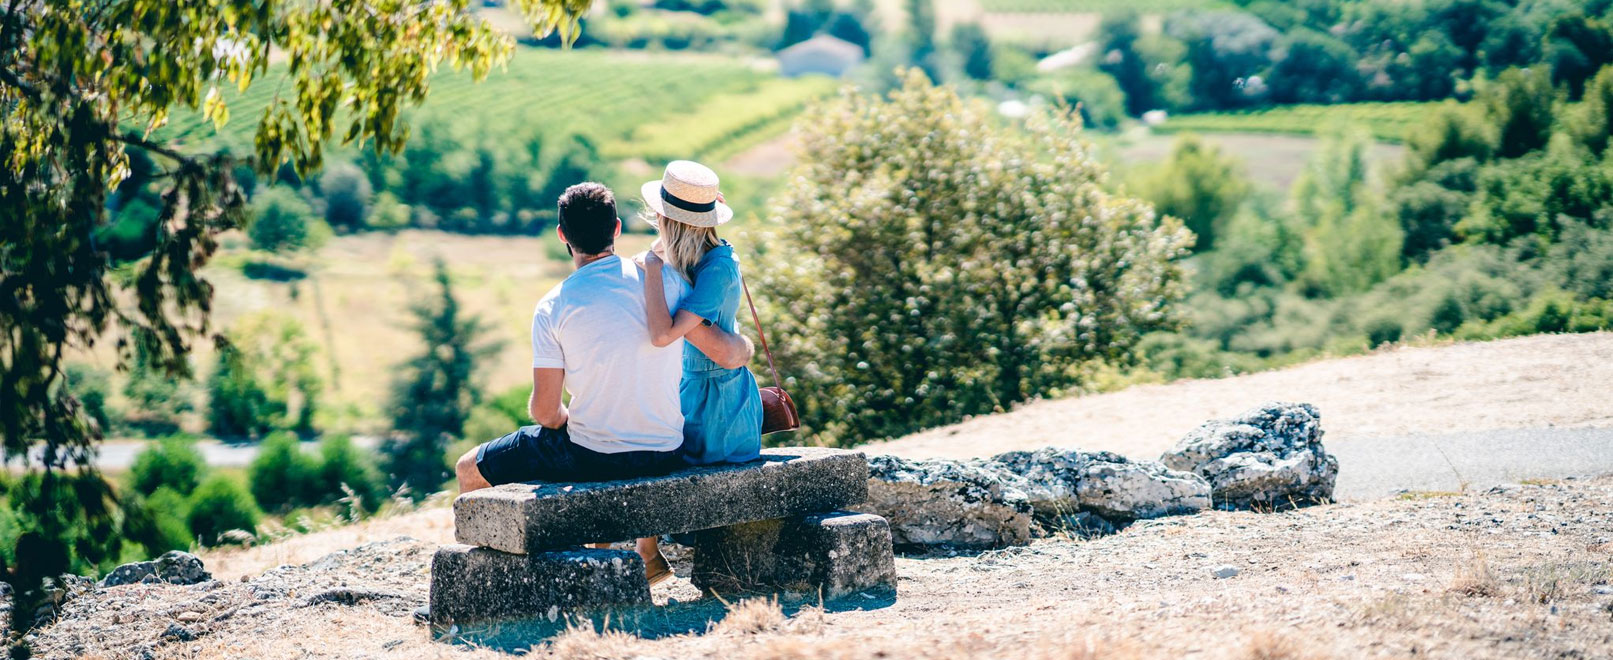 Discover Vaucluse without a car!